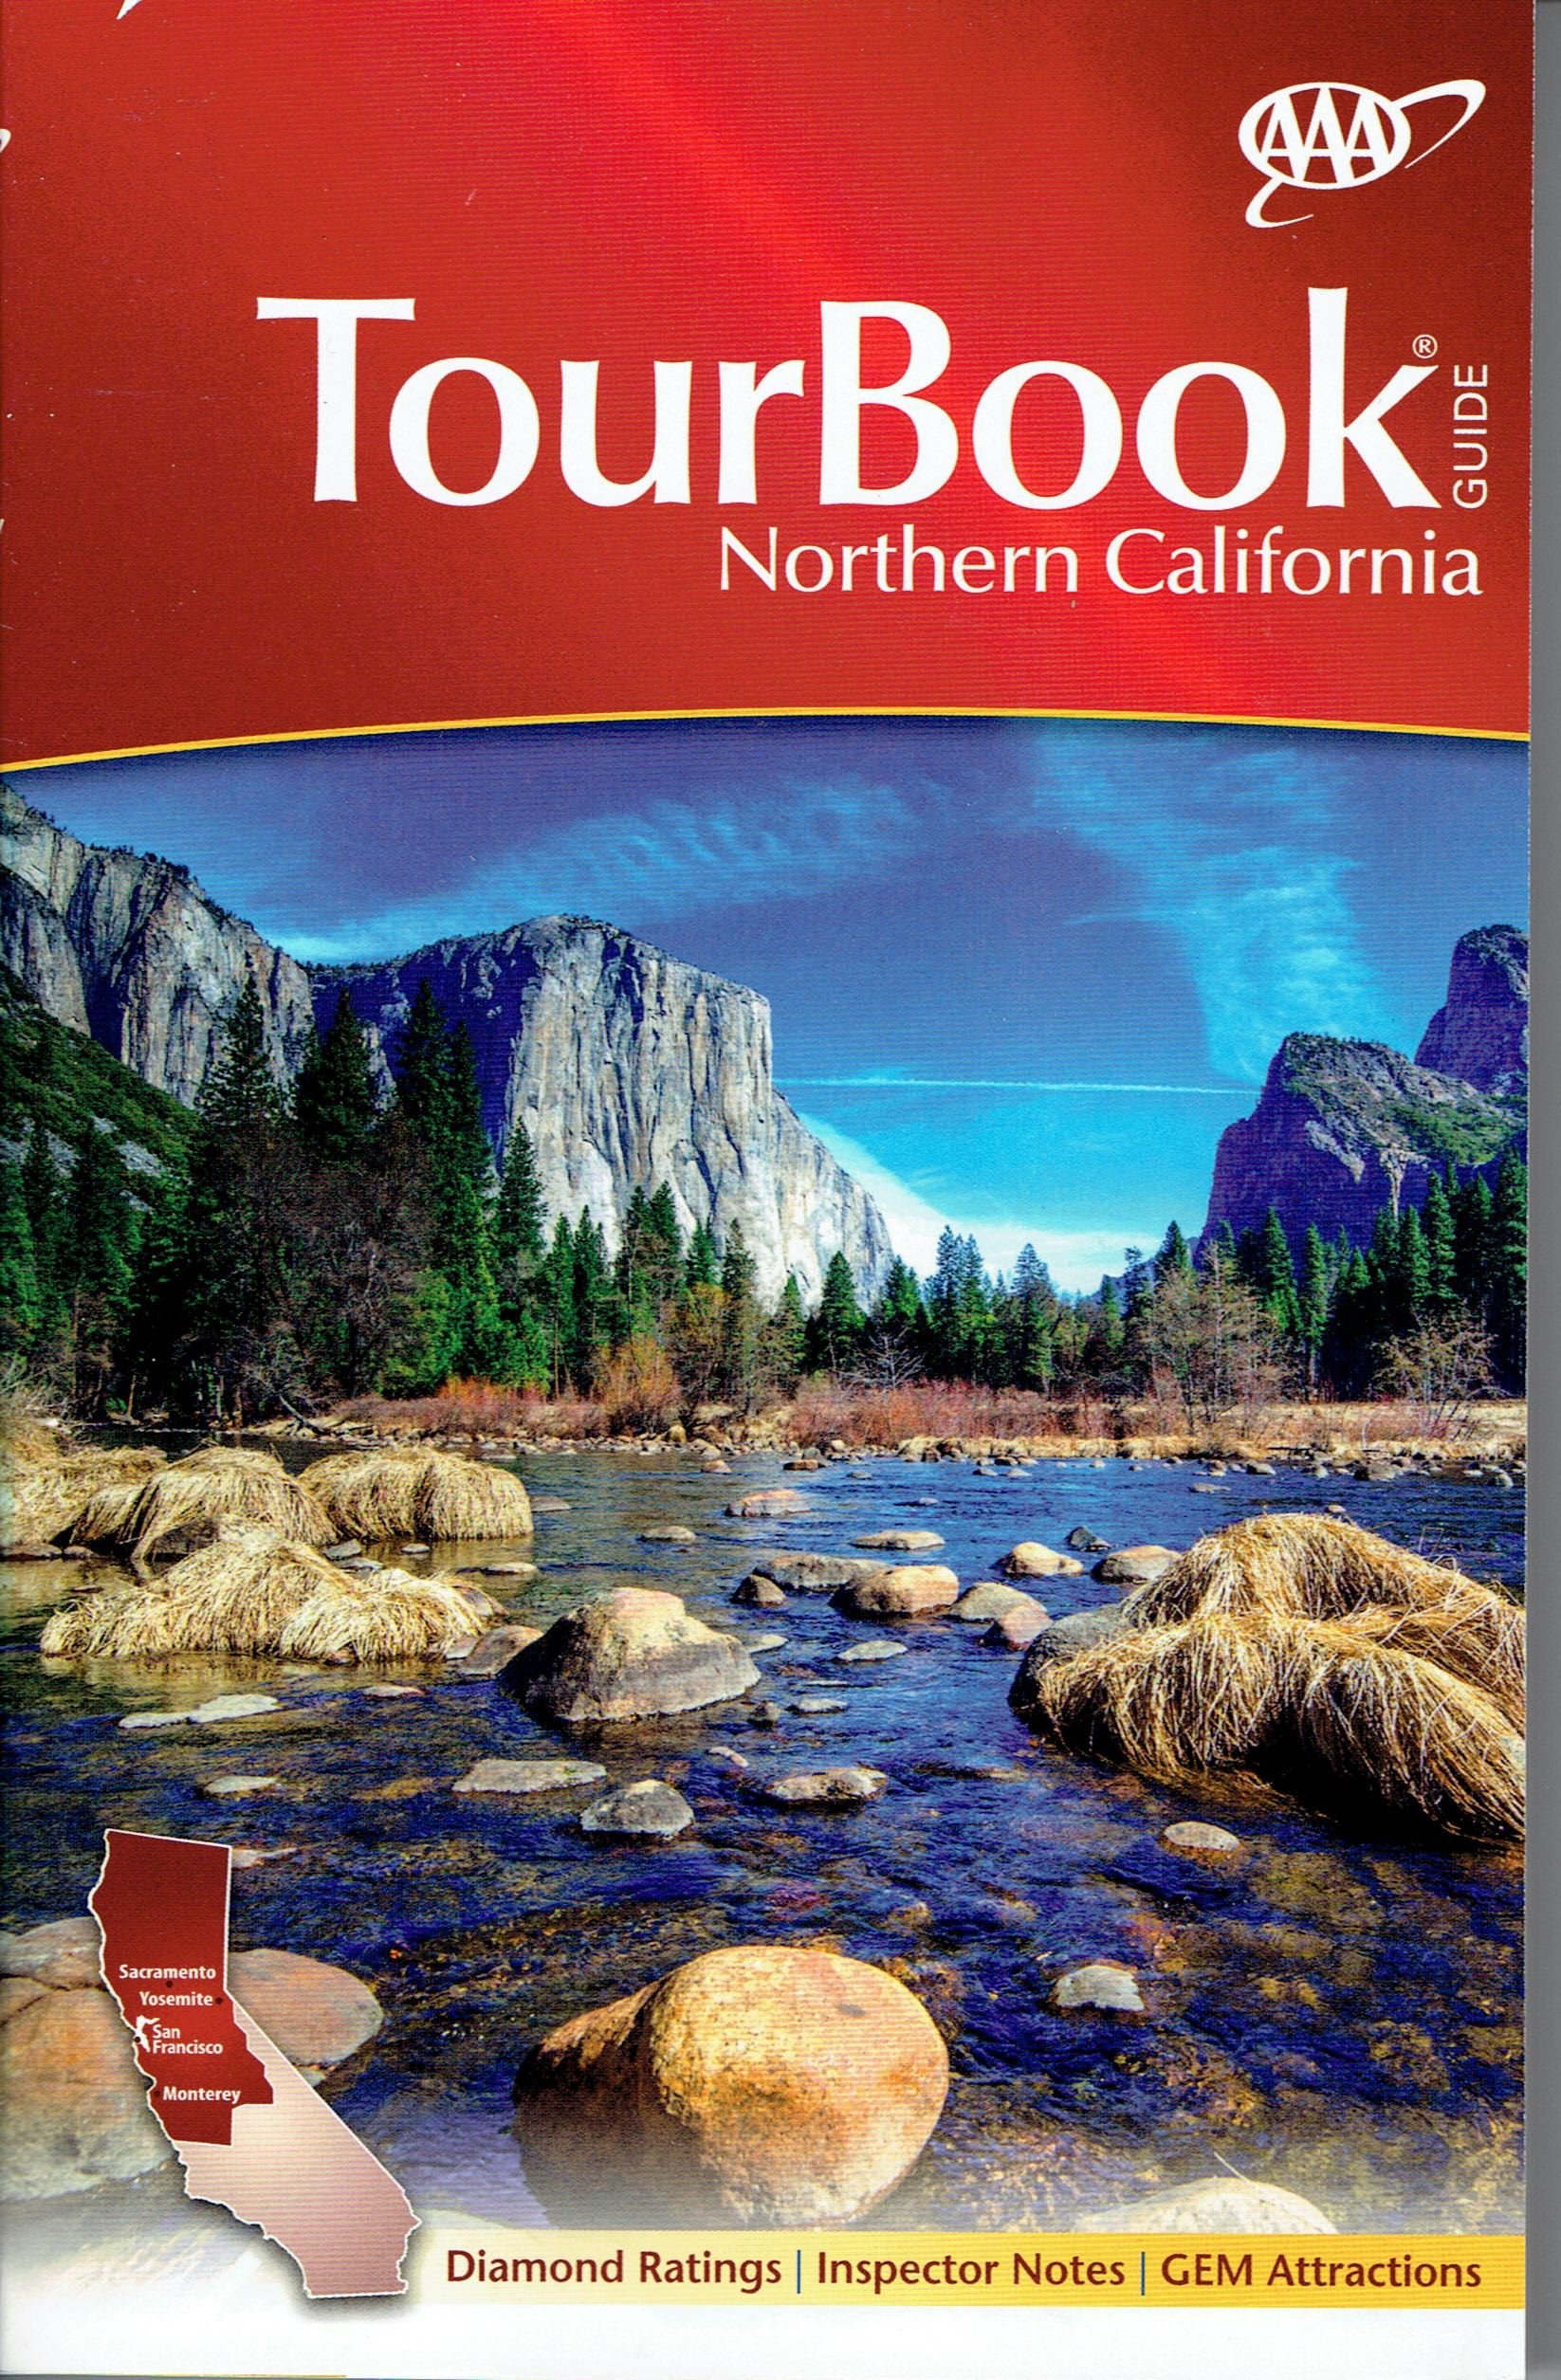 Download Northern California Tour Book Guide 2017 - AAA Look up any town/city to find/compare nearly all hotels, restaurants, attractions with ratings, inspector notes, recommendations. 478 page TourBook ebook